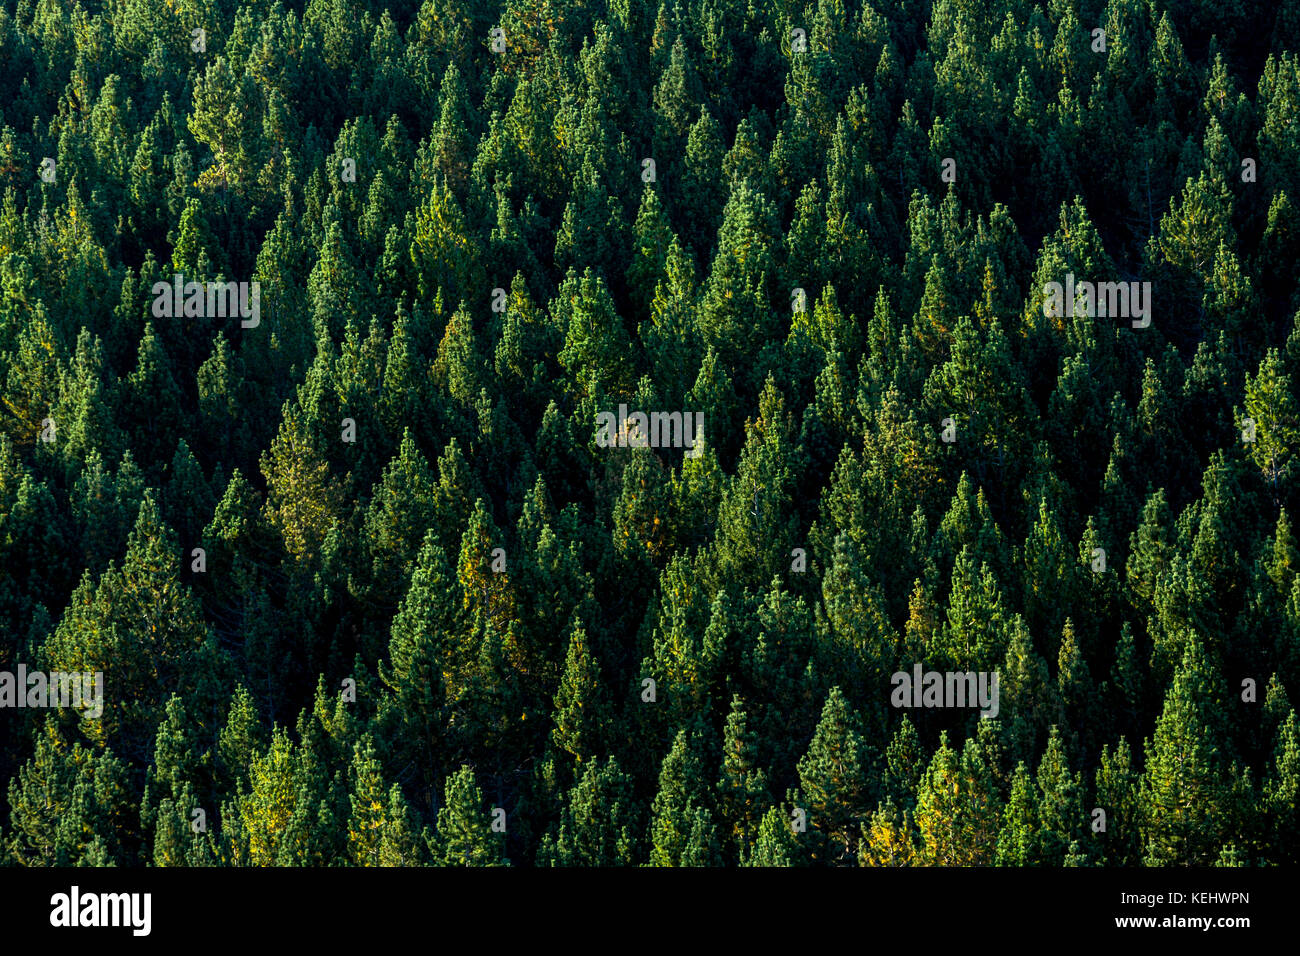 Evergreen coniferous forest in Picos de Europa mountains - Peaks of Europe - in Castilla y Leon, Northern Spain - Stock Image